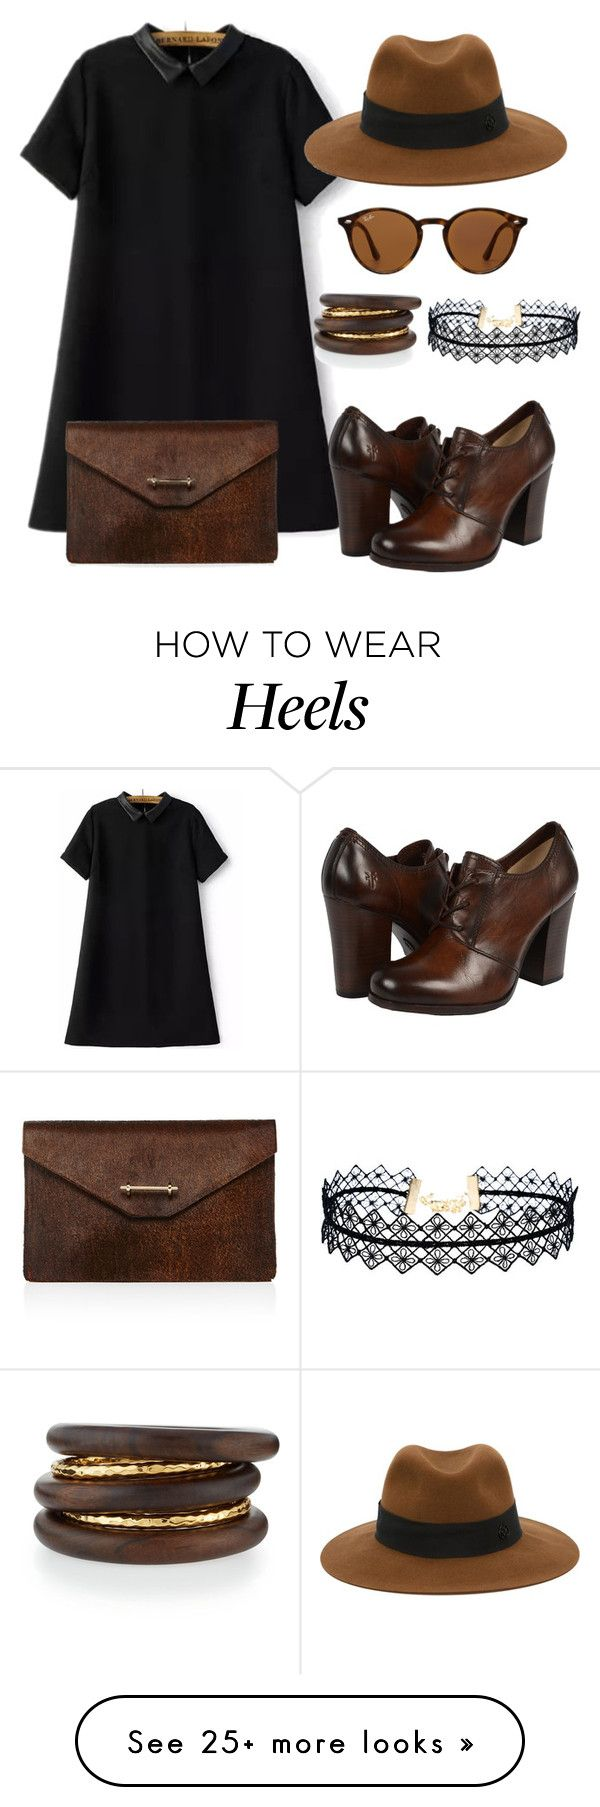 """Oxford heels."" by fashionxx101 on Polyvore featuring M2Malletier, Frye, Ray-Ban, Maison Michel, LULUS and NEST Jewelry"